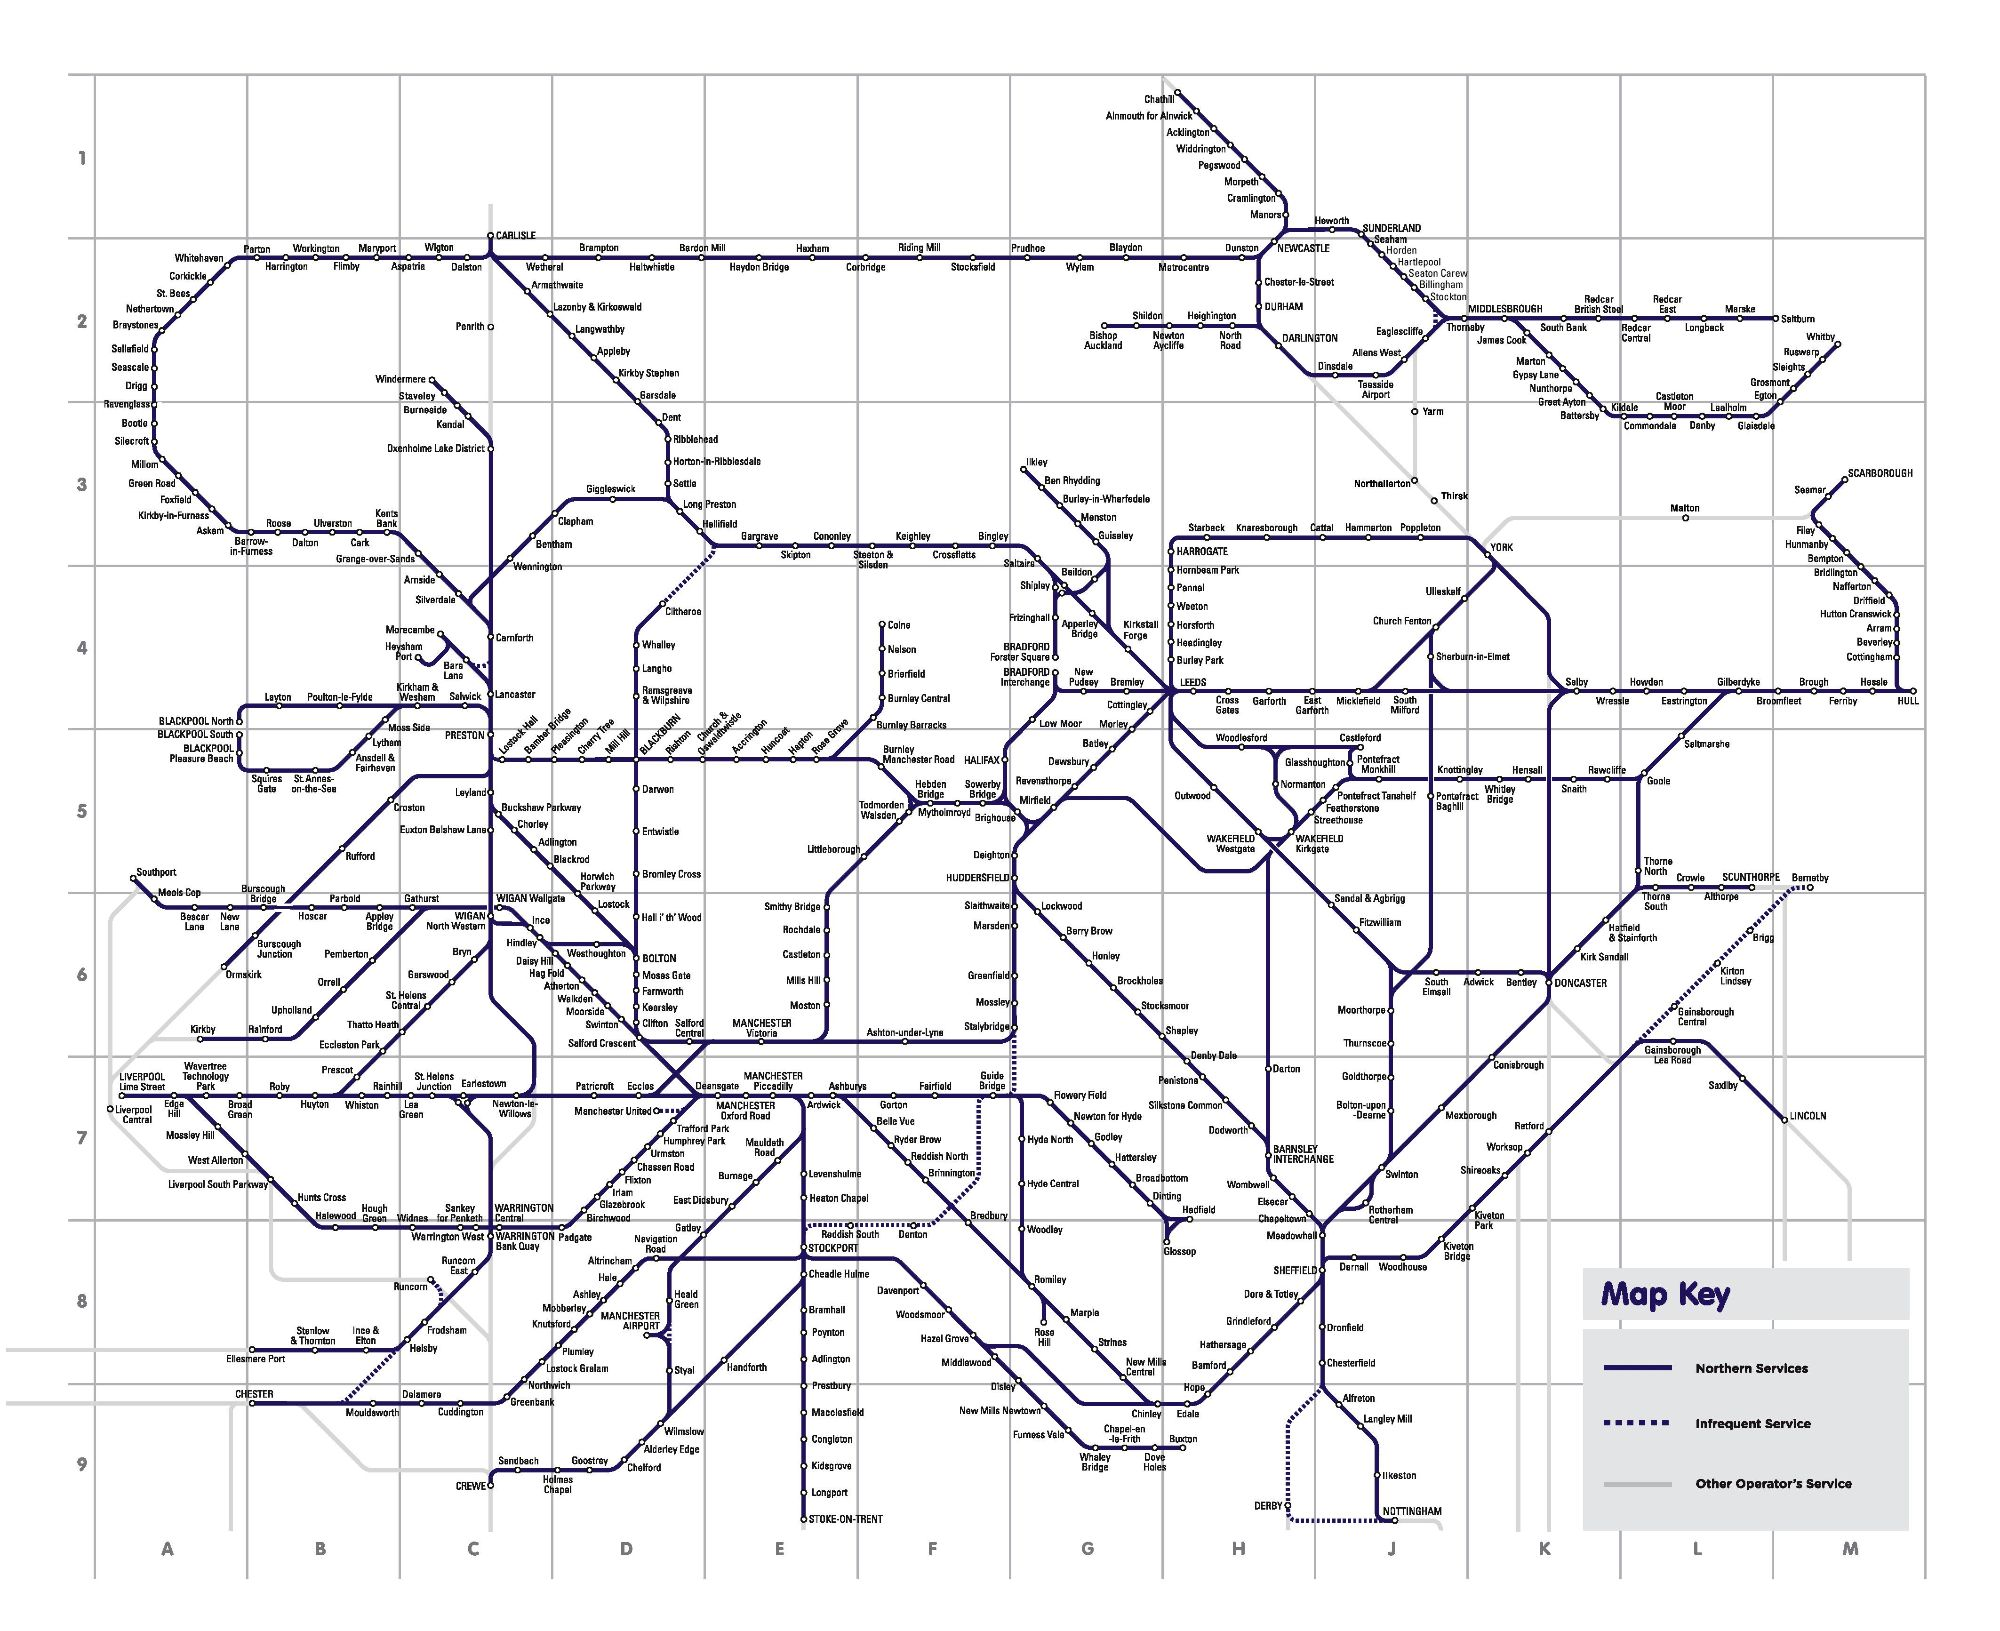 Image showing the Northern Railway route map cira 2021.